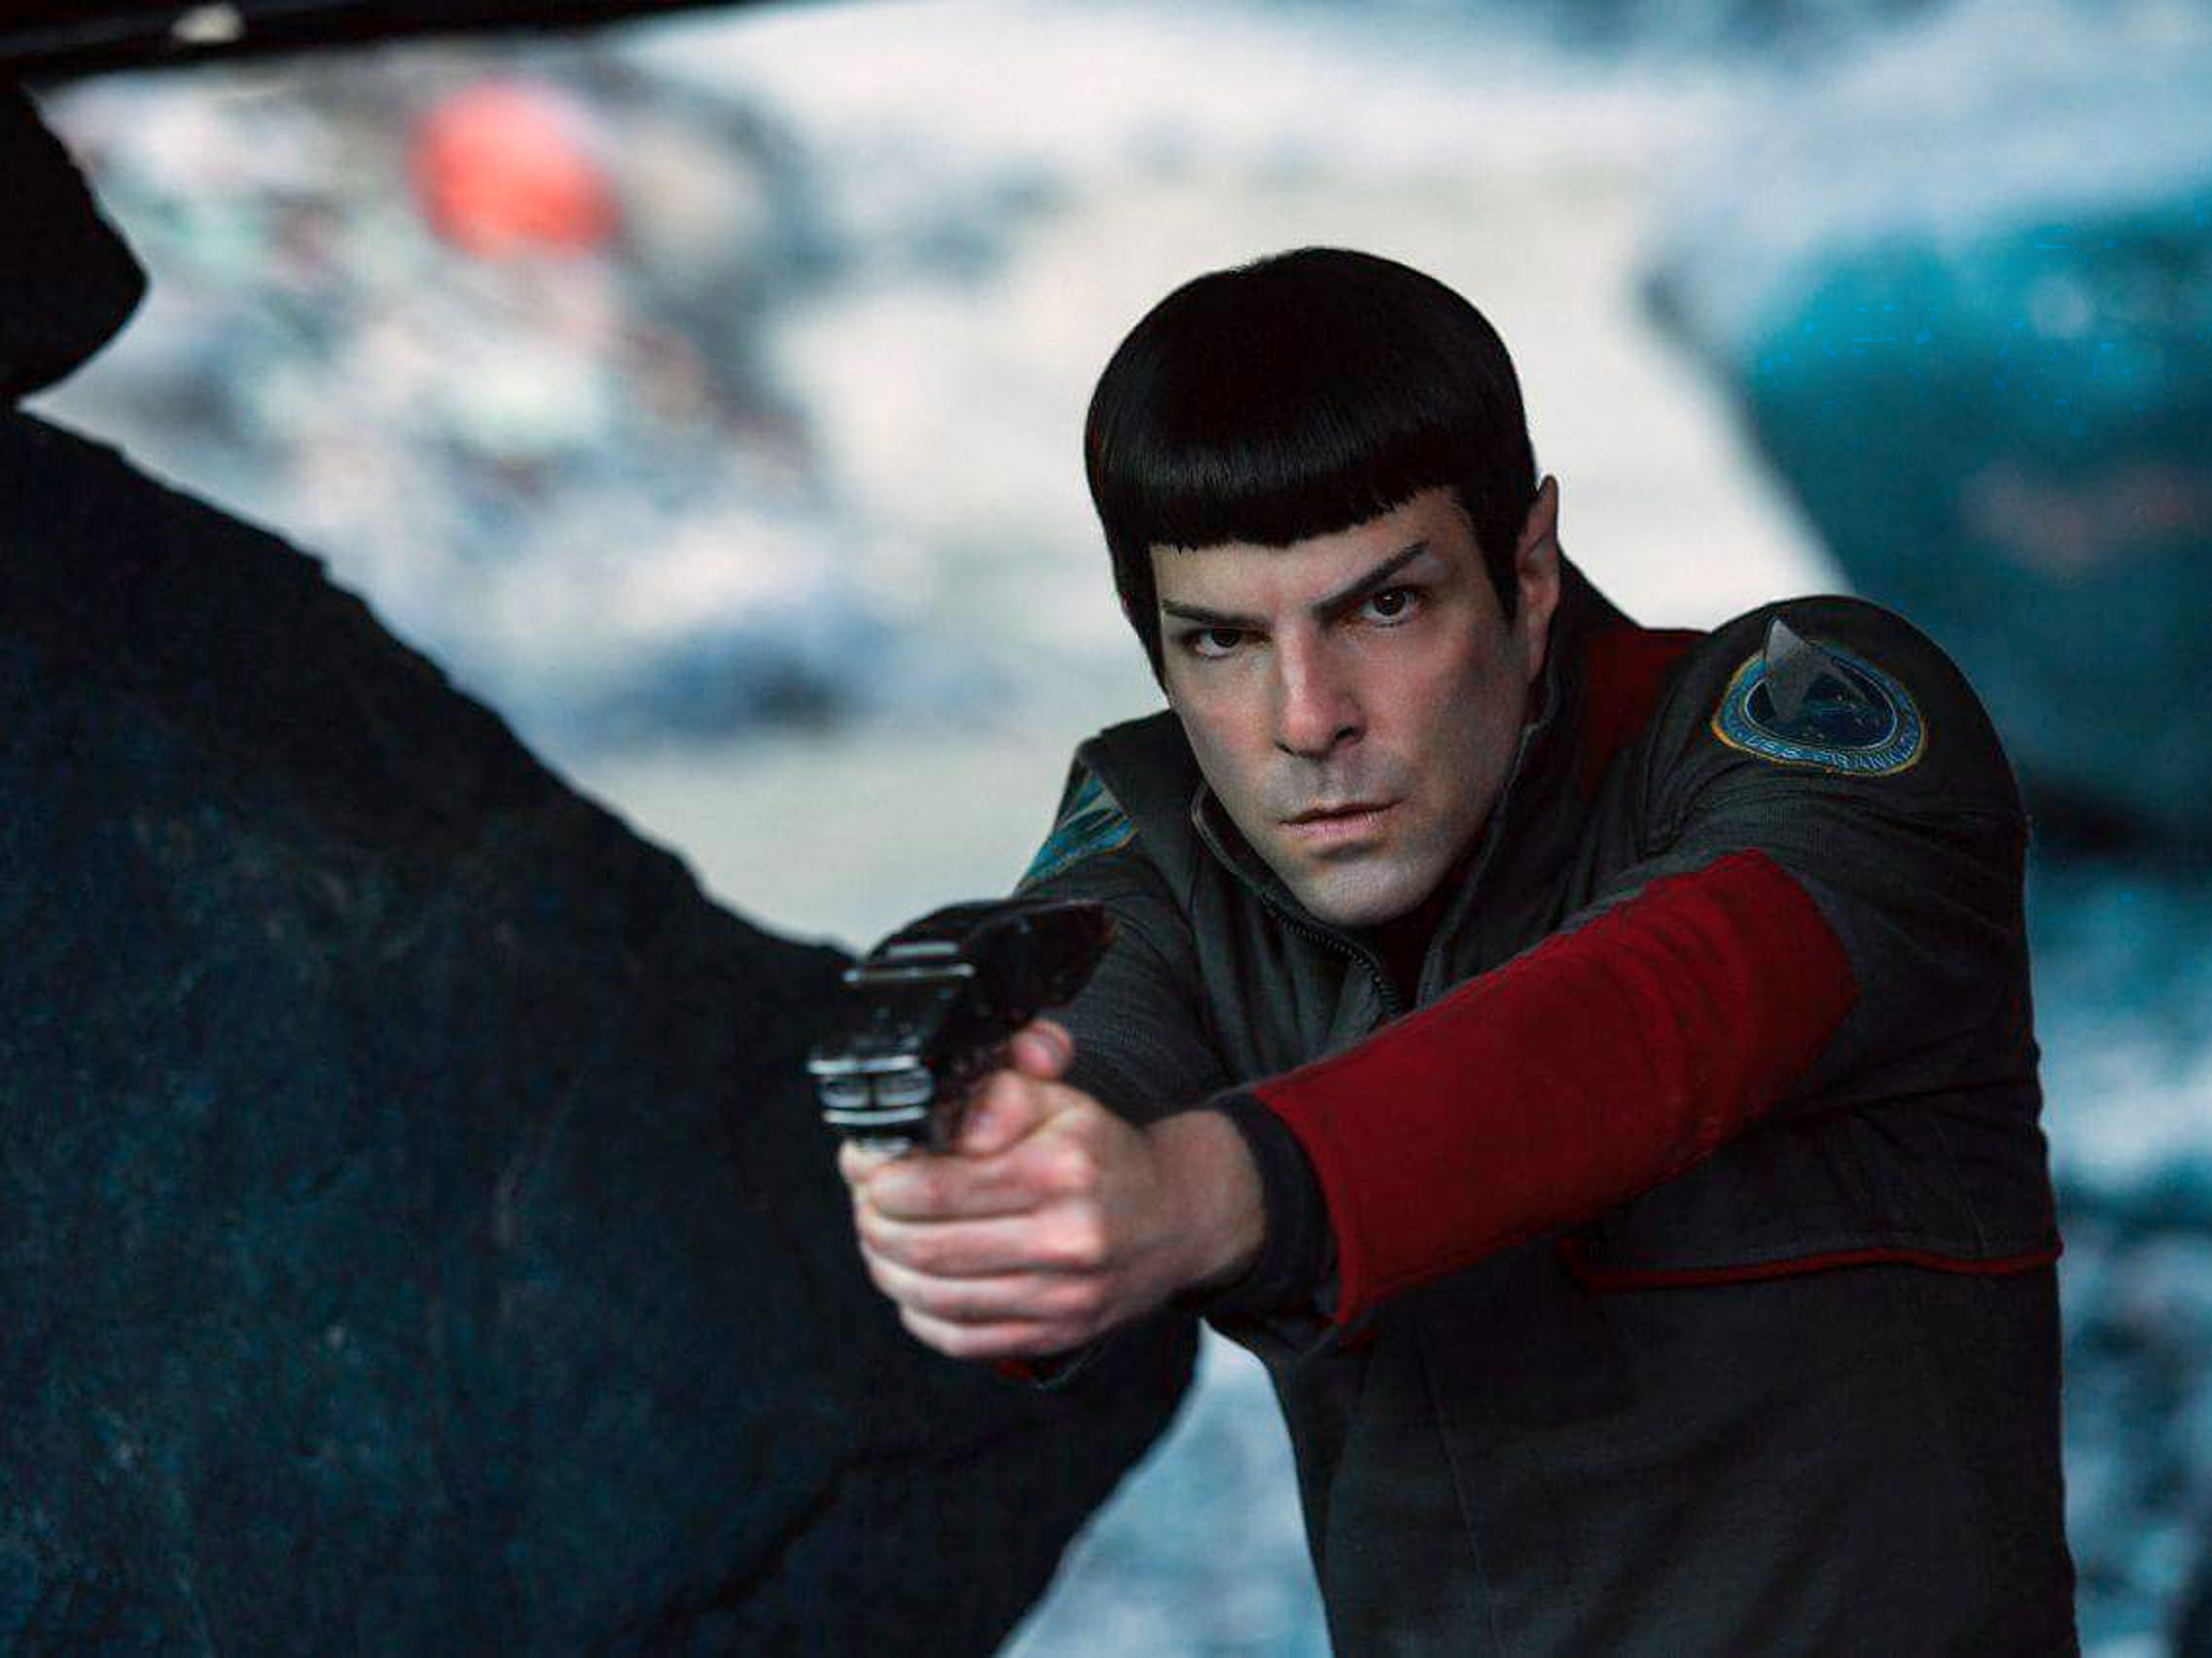 The Stun Guns of Sci-Fi Are More Science, Less Fiction